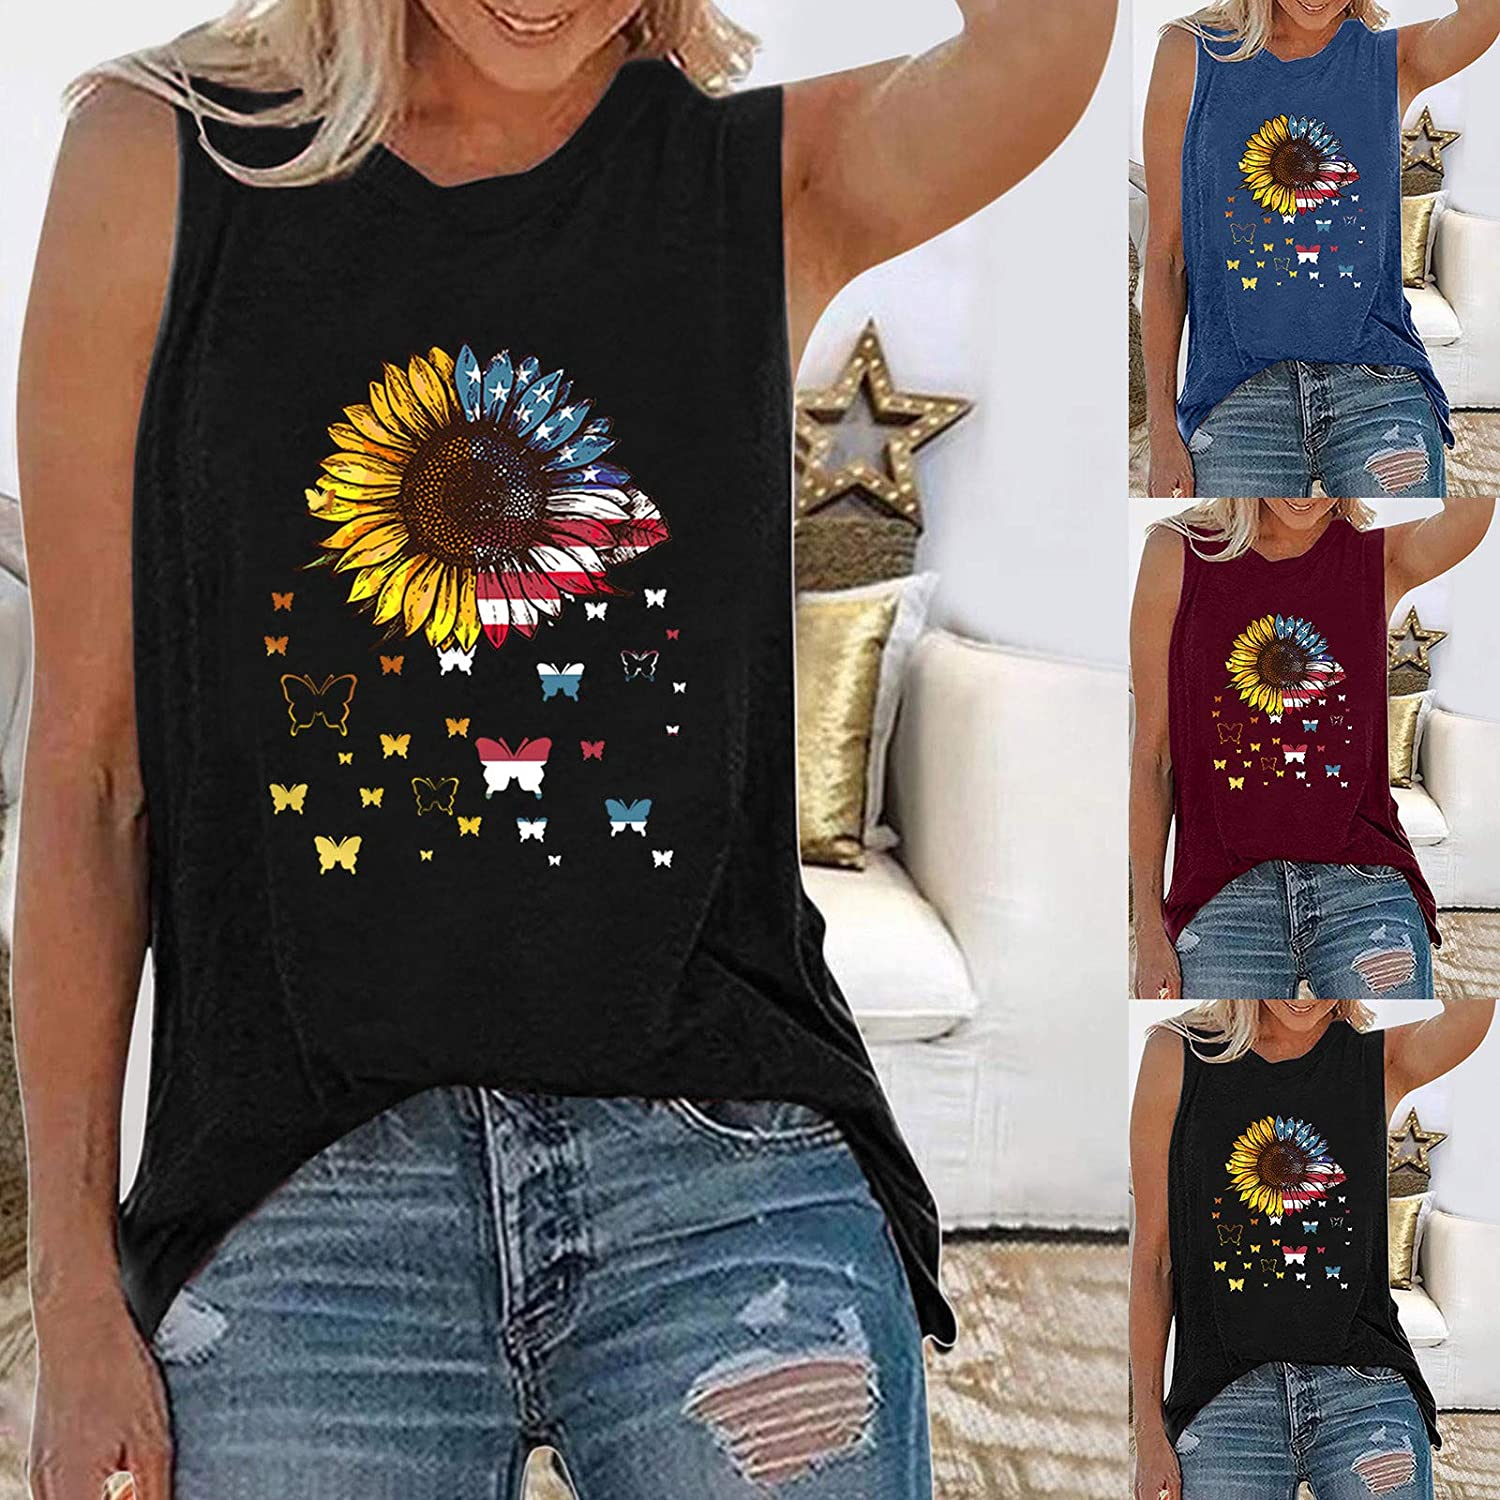 Tank Tops for Women, Sleeveless O-Neck Tunic Blouse Tops Tees Sunflower Printed T Shirts Blouses 4th of July